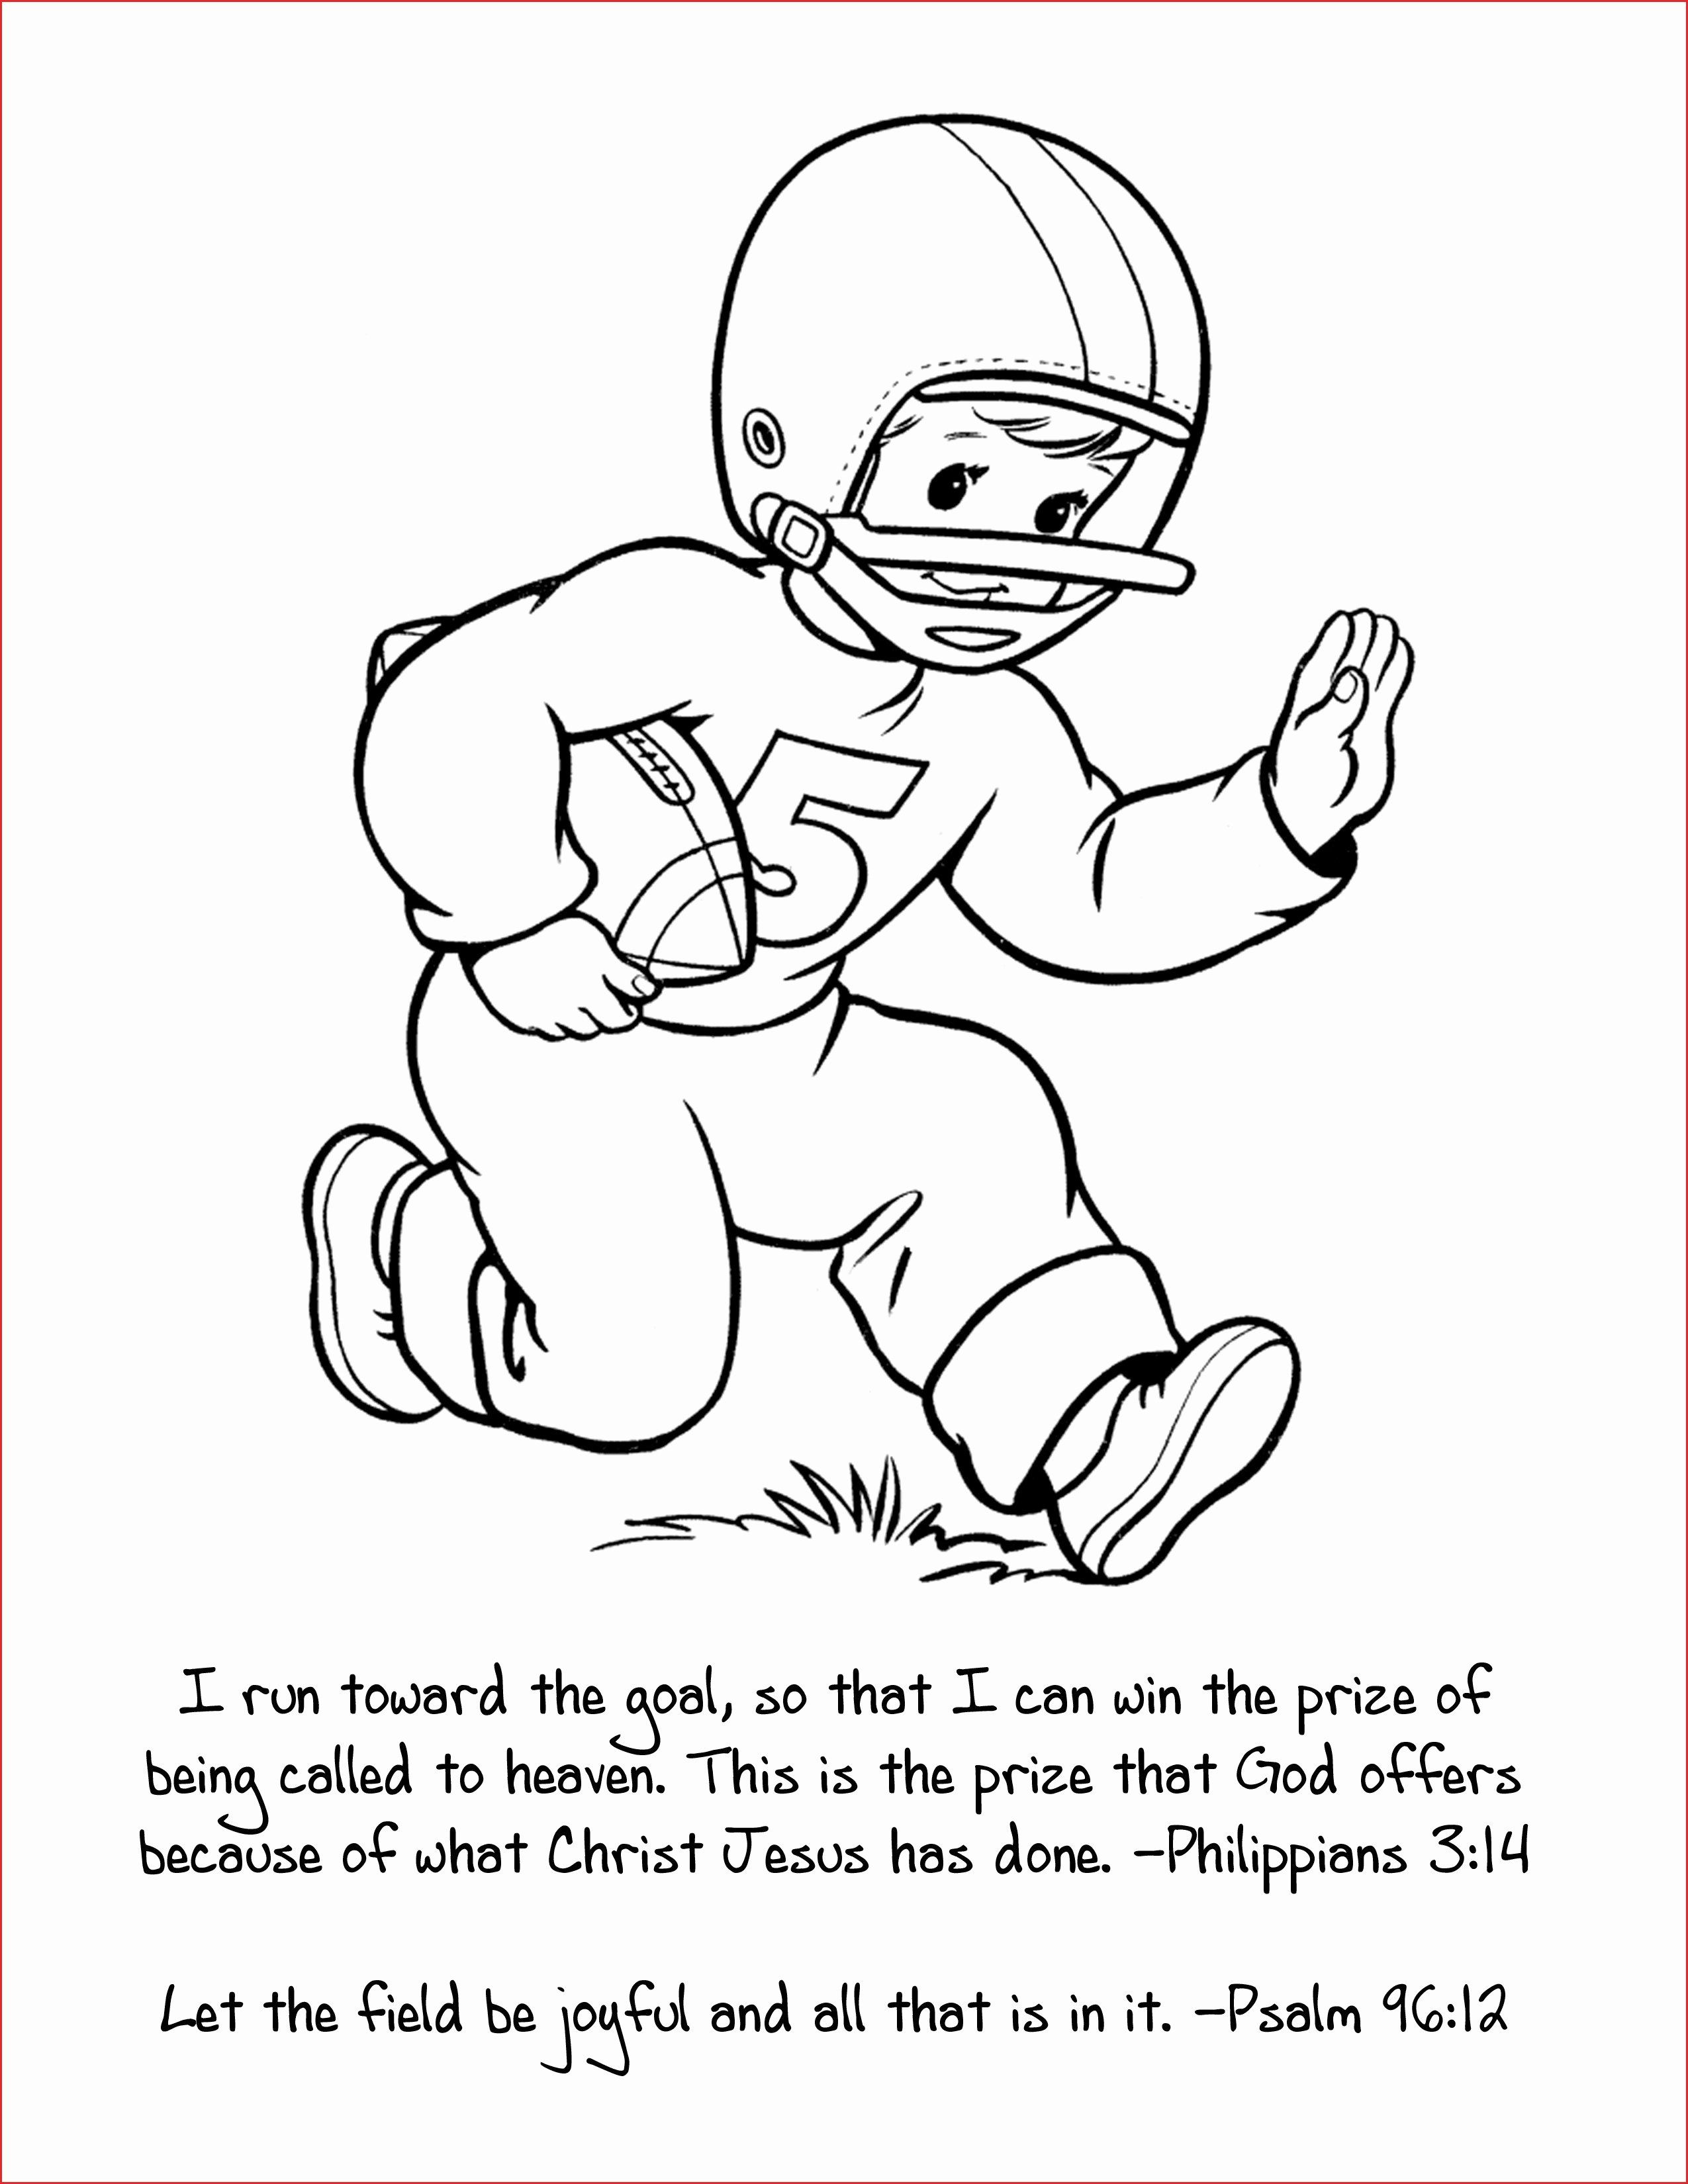 Animal Coloring Vector Elegant Top Cheerleader Coloring Pages Collection Coloring Pa Football Coloring Pages Hello Kitty Colouring Pages Crayola Coloring Pages